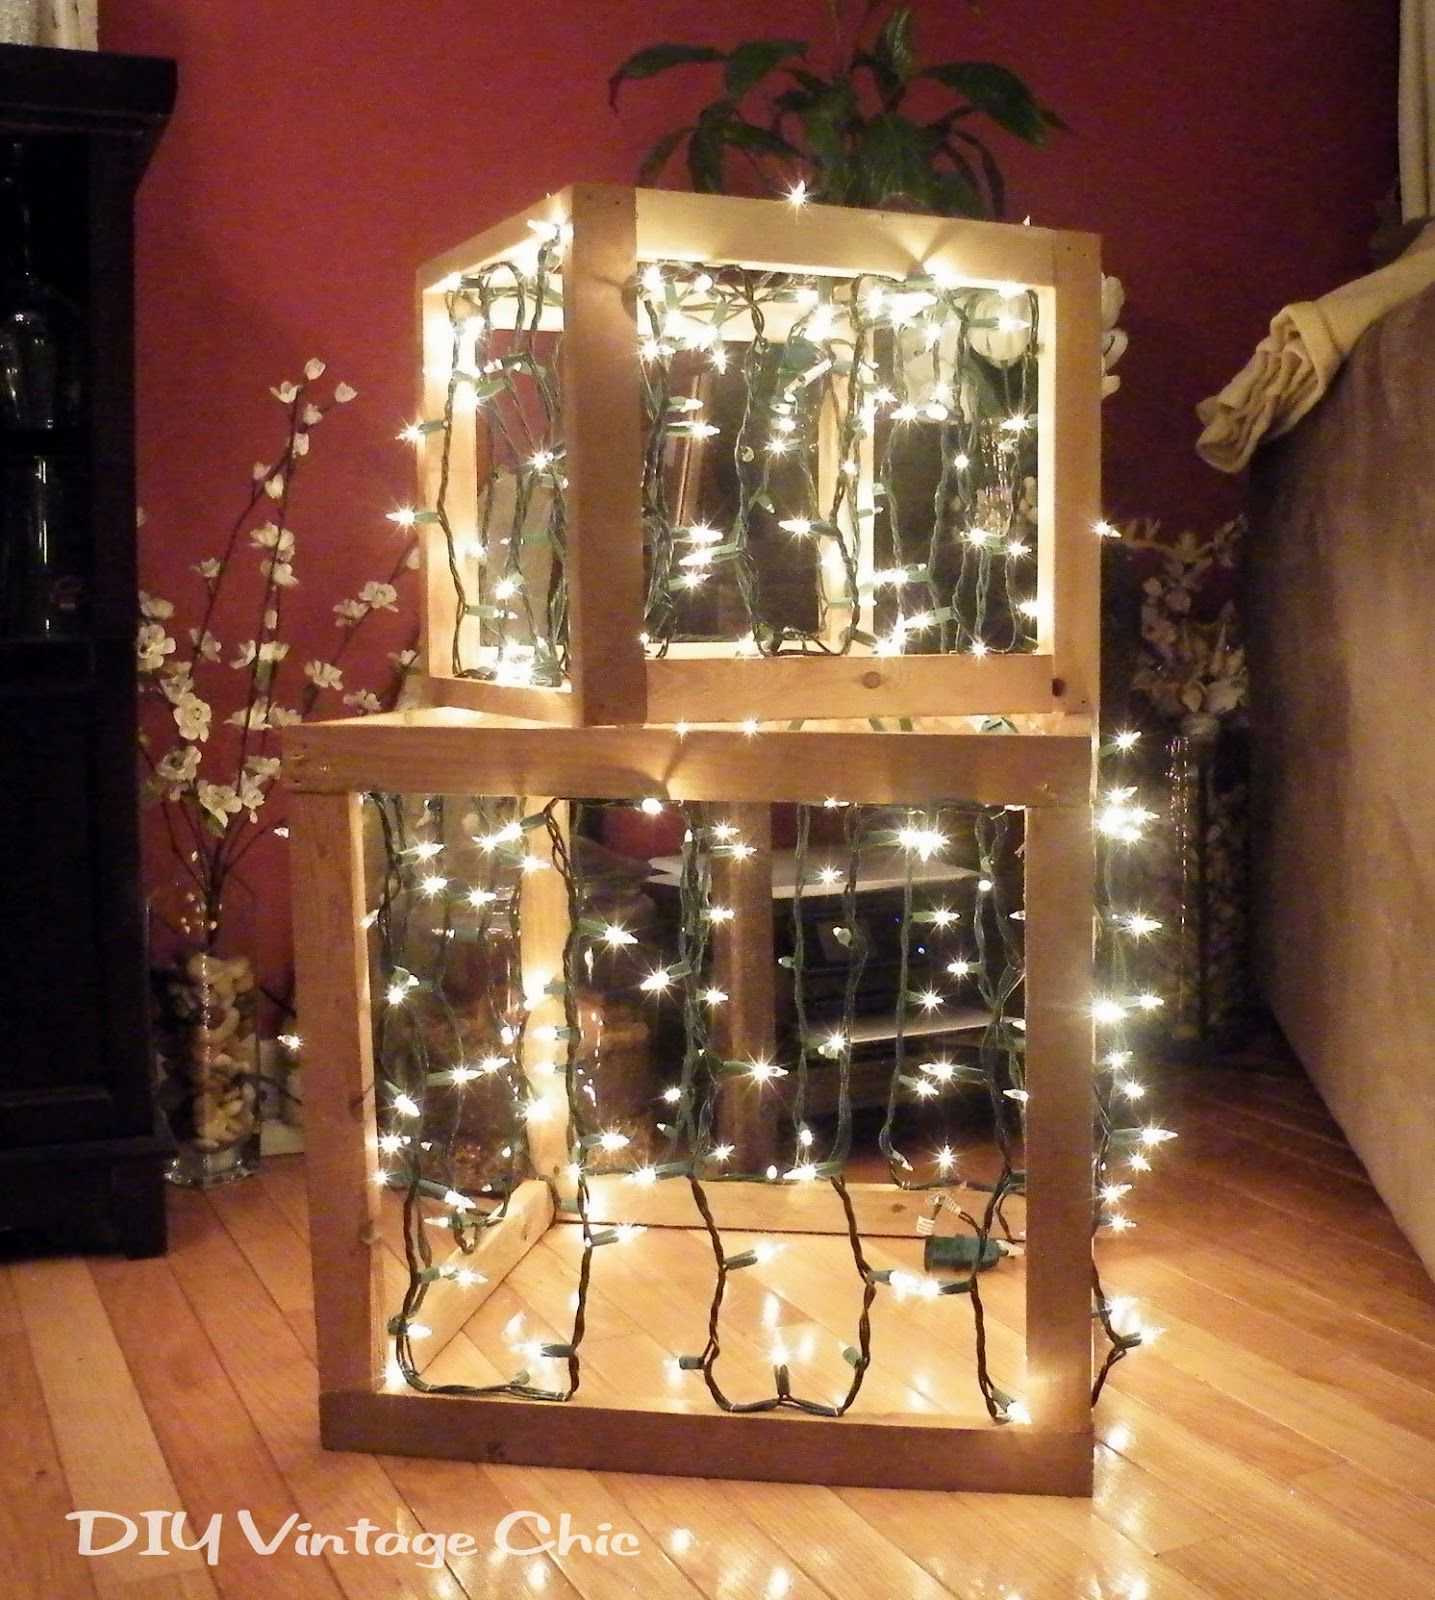 Superior DIY Vintage Chic: How To Make Lighted Christmas Presents For Outdoors